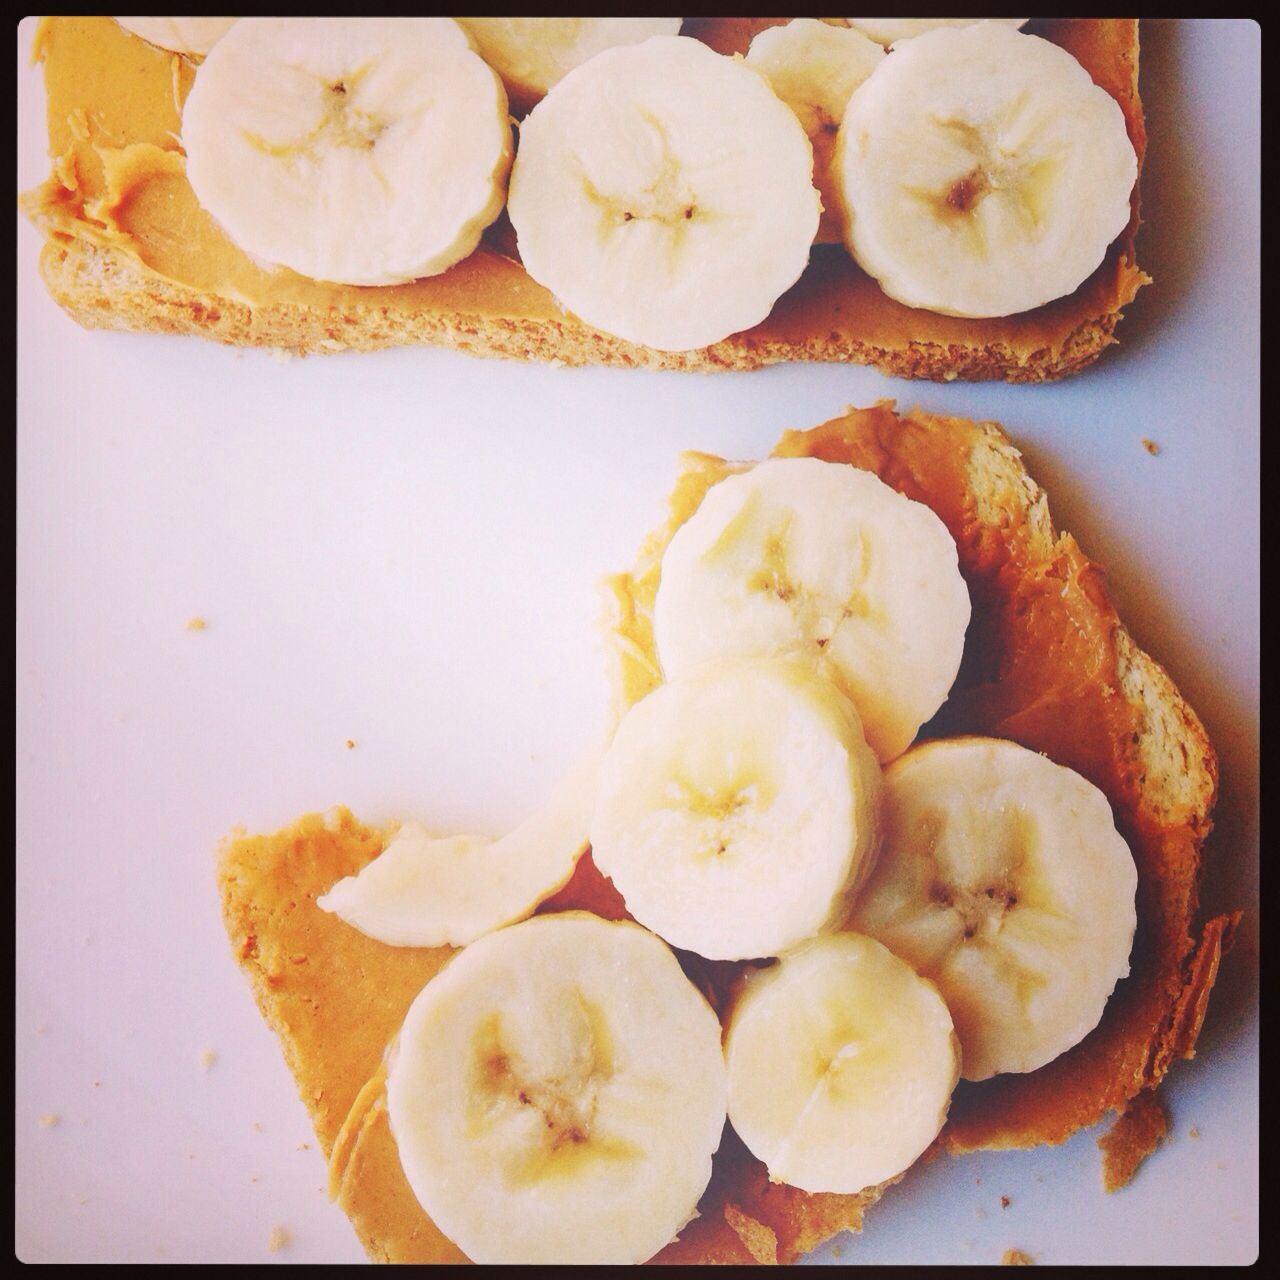 Peanut butter and bananas mmm